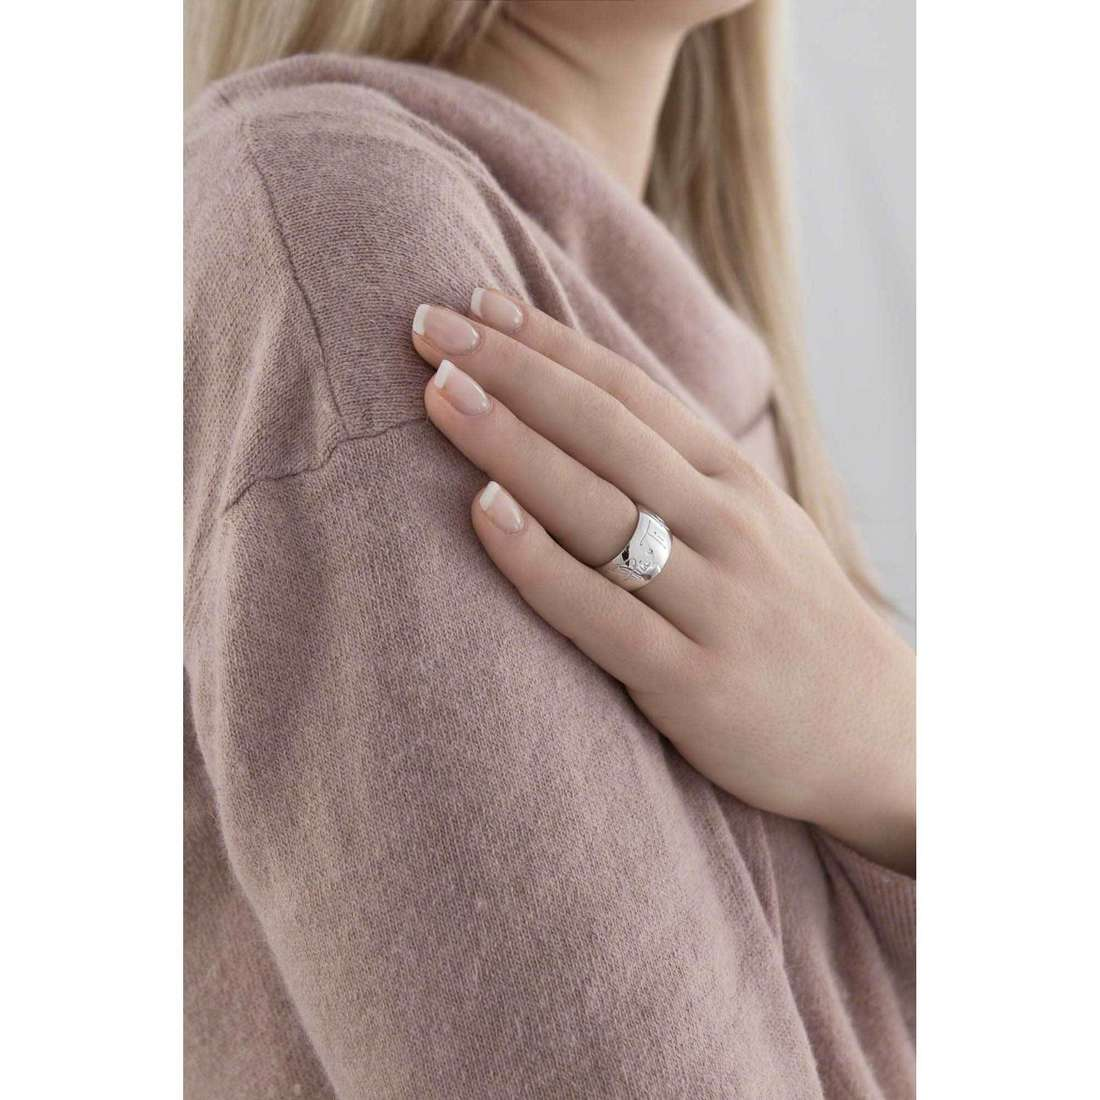 Bliss rings taogd+ woman 20037487 indosso